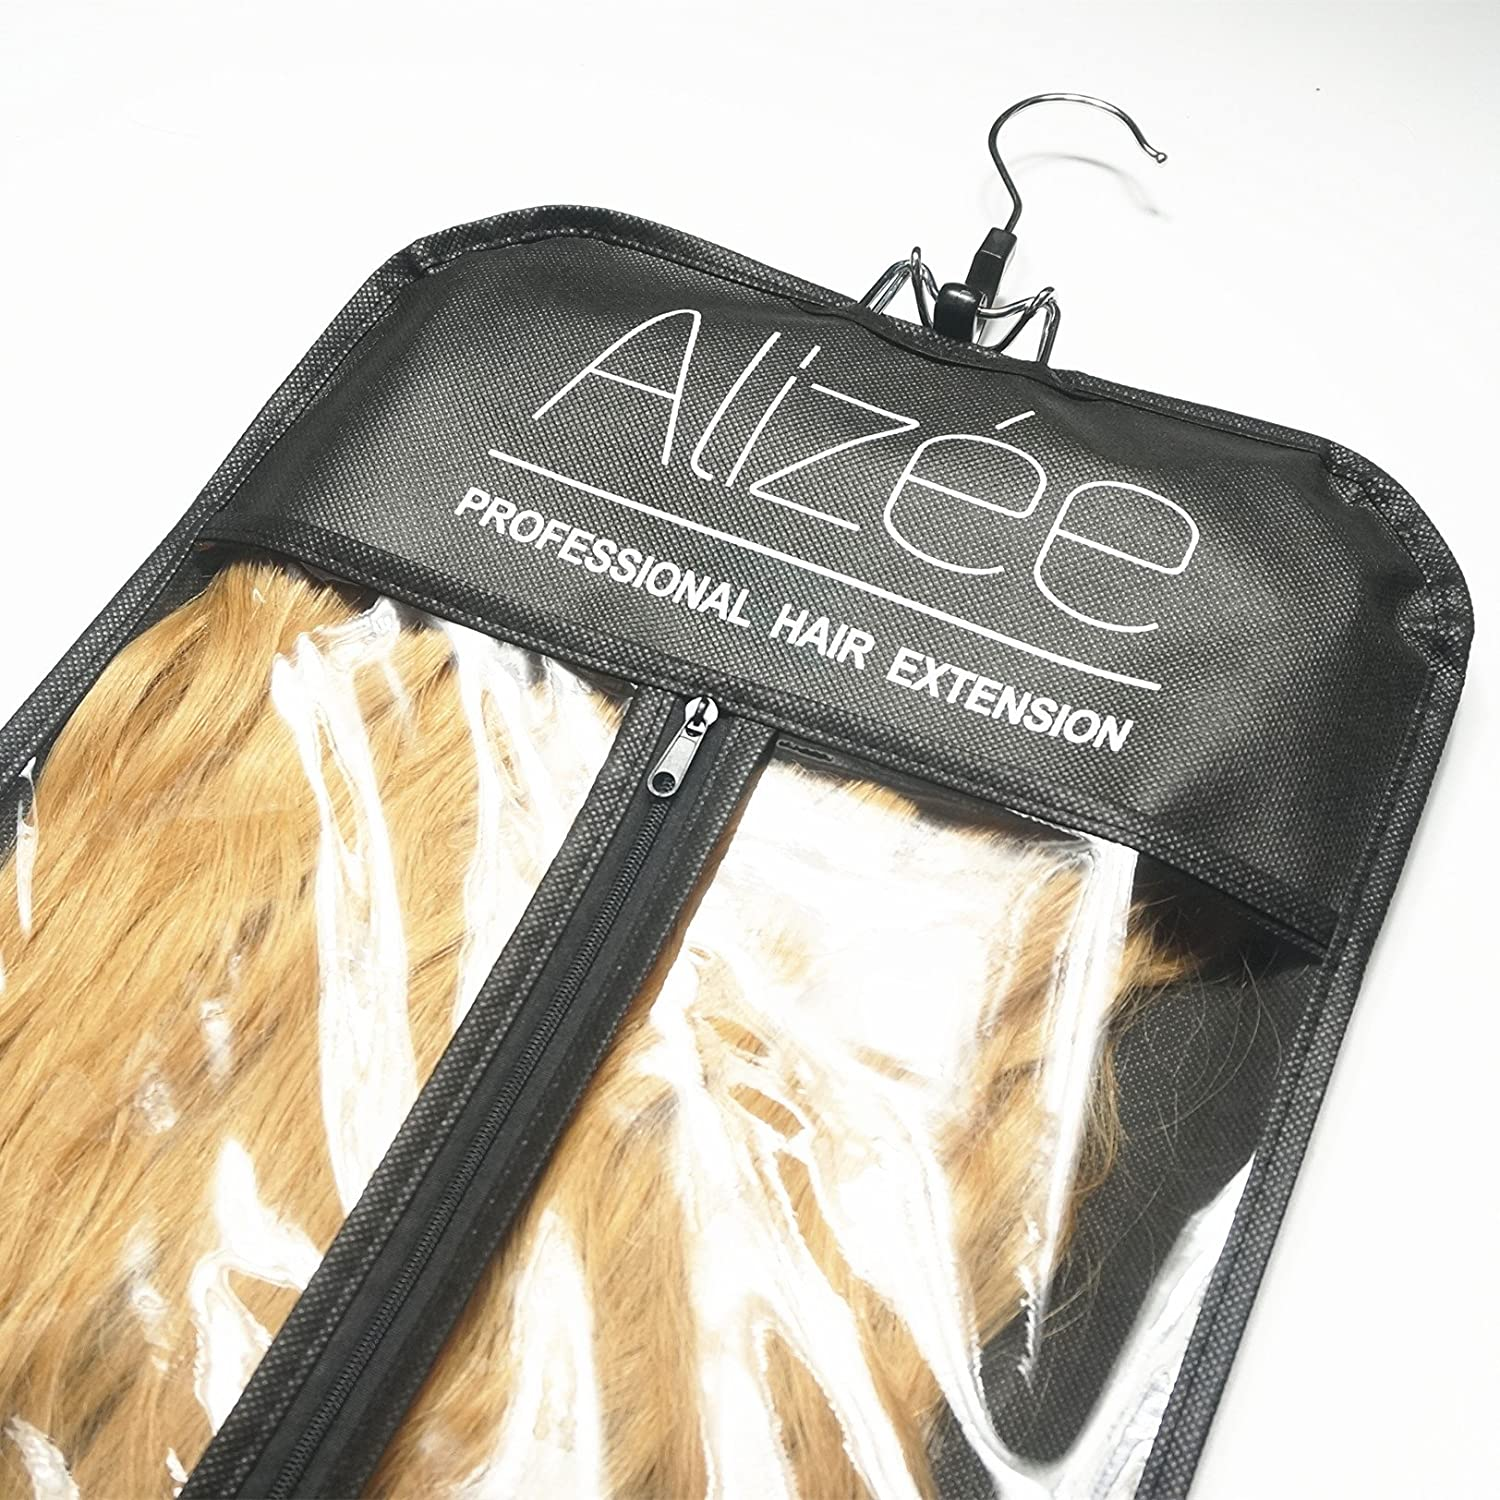 Alize Professional Hair Extension Carrier Nonwoven Suit Case Bag With Black Wooden Hanger For